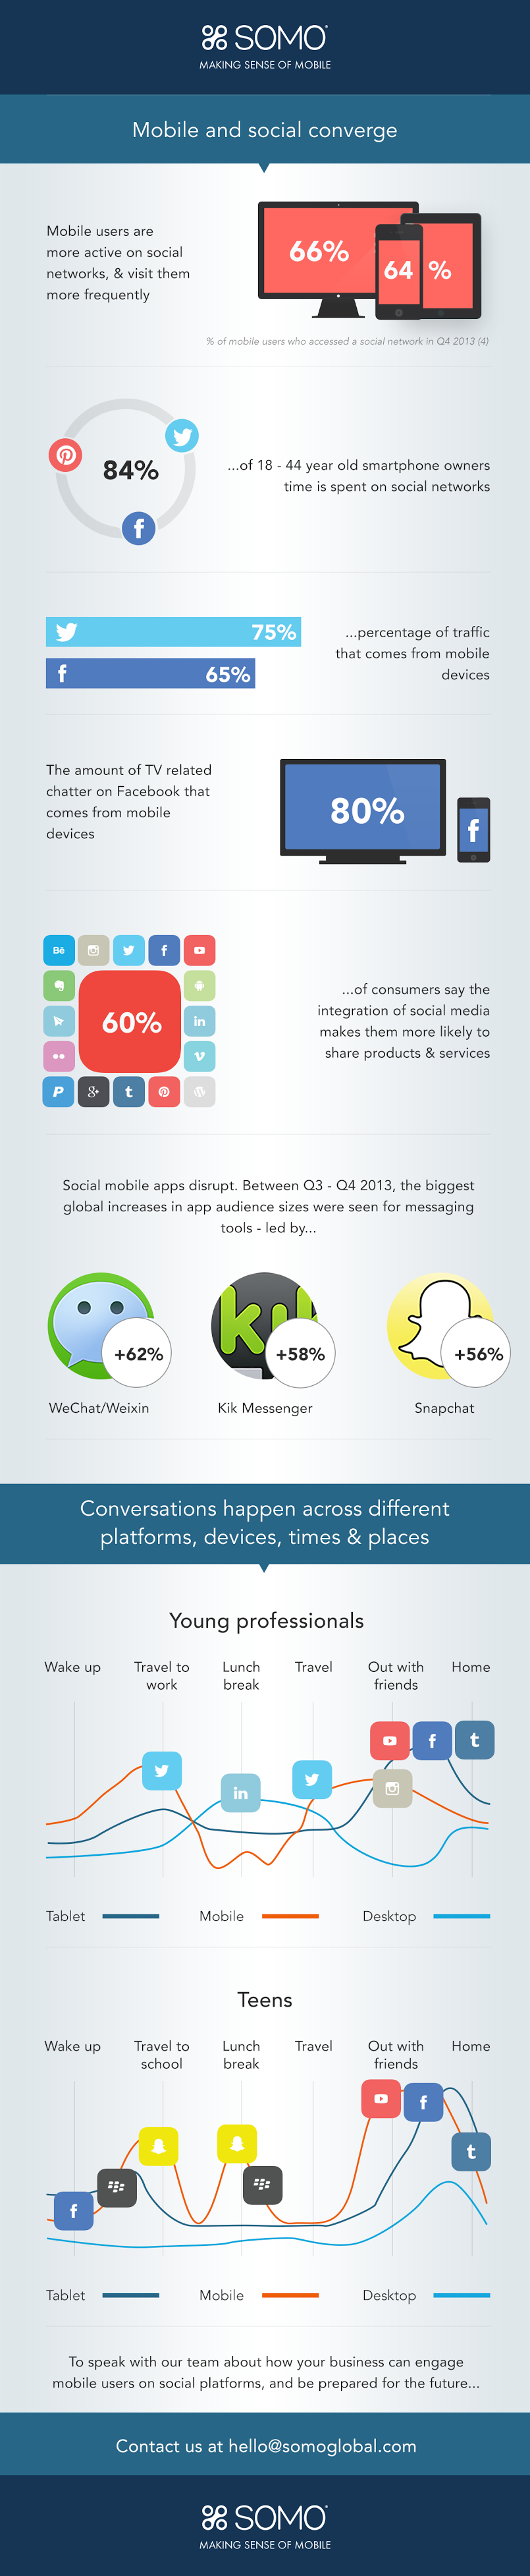 what happens when #socialmedia and mobile converge? - #infographic #SOMO